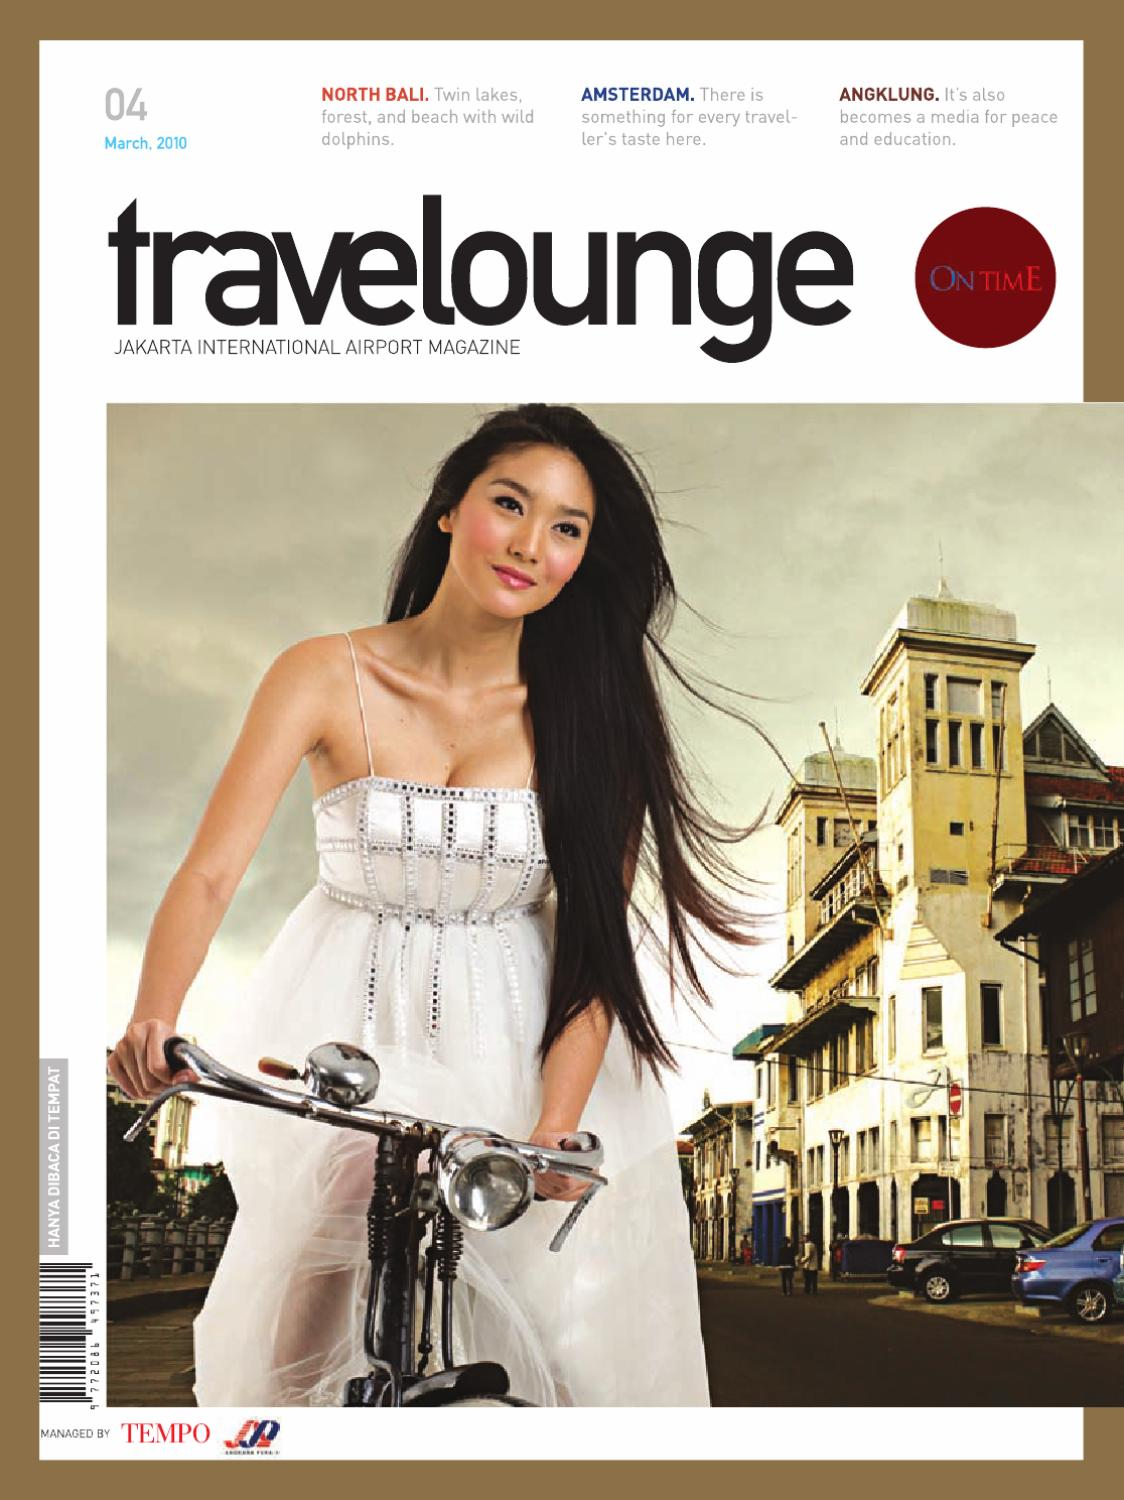 Travelounge March 2010 04 By Jakarta Issuu Kue Kering Matari Warung Barokah Akumandiri